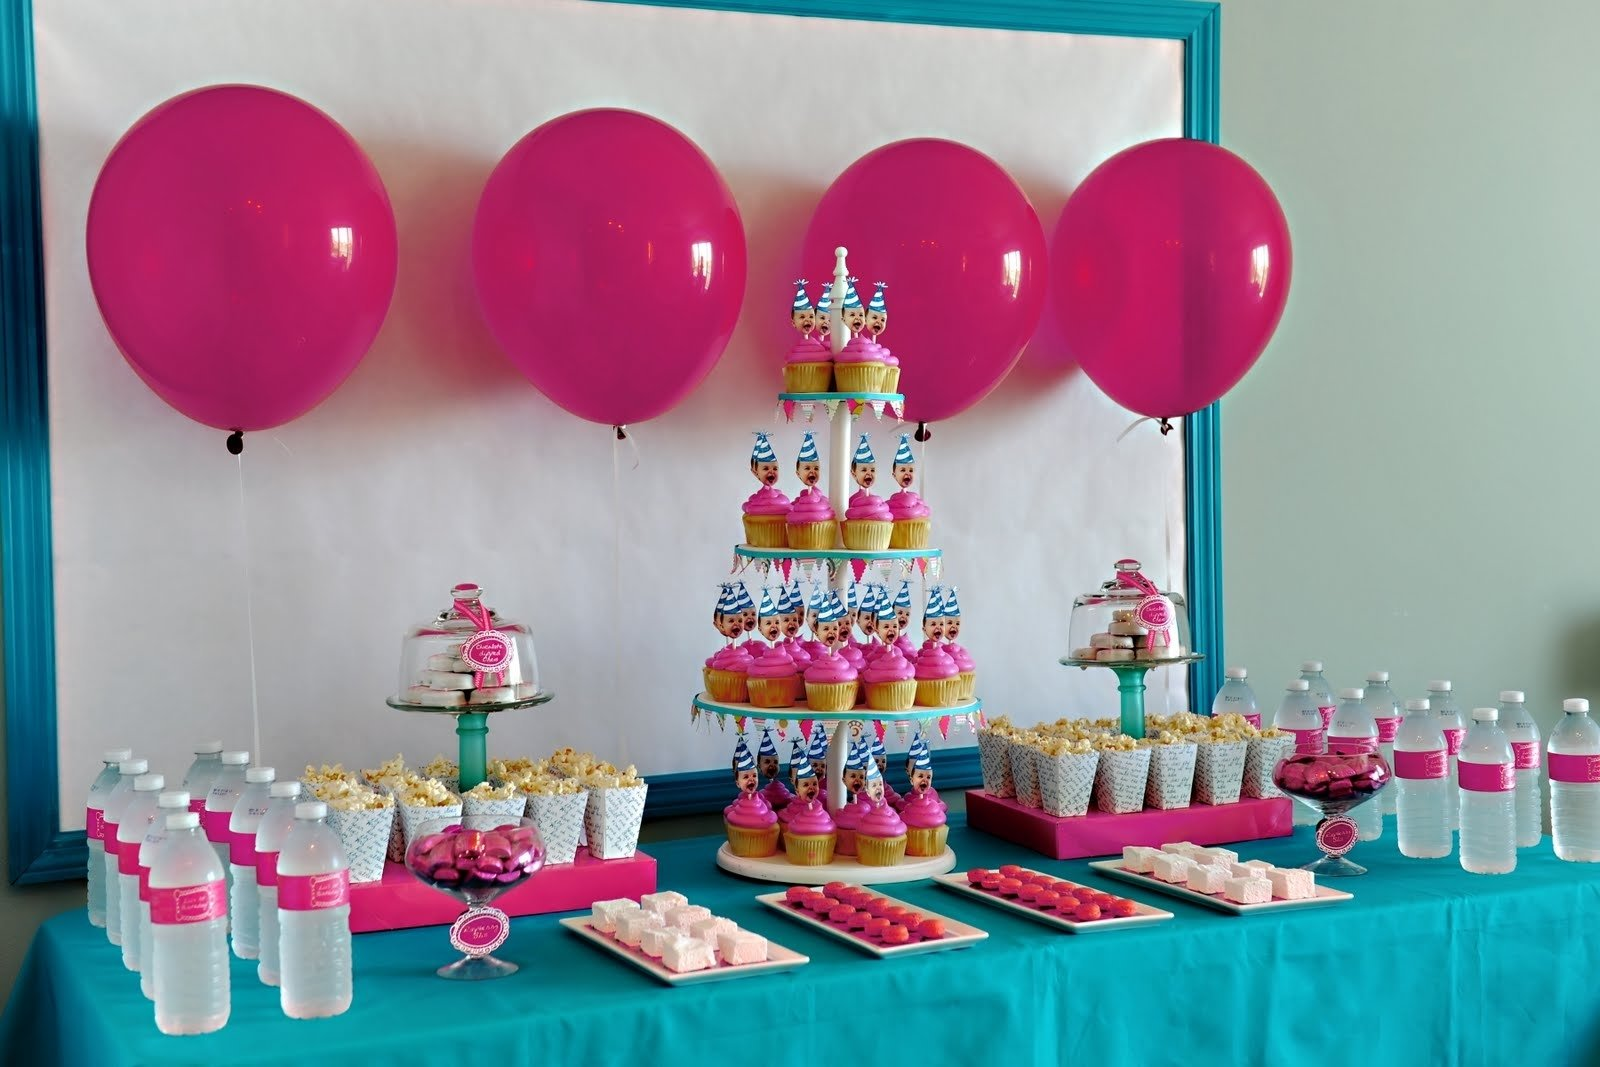 10 Best Ideas For A One Year Old Birthday Party themes birthday baby 1 year old birthday party ideas singapore 1 2020